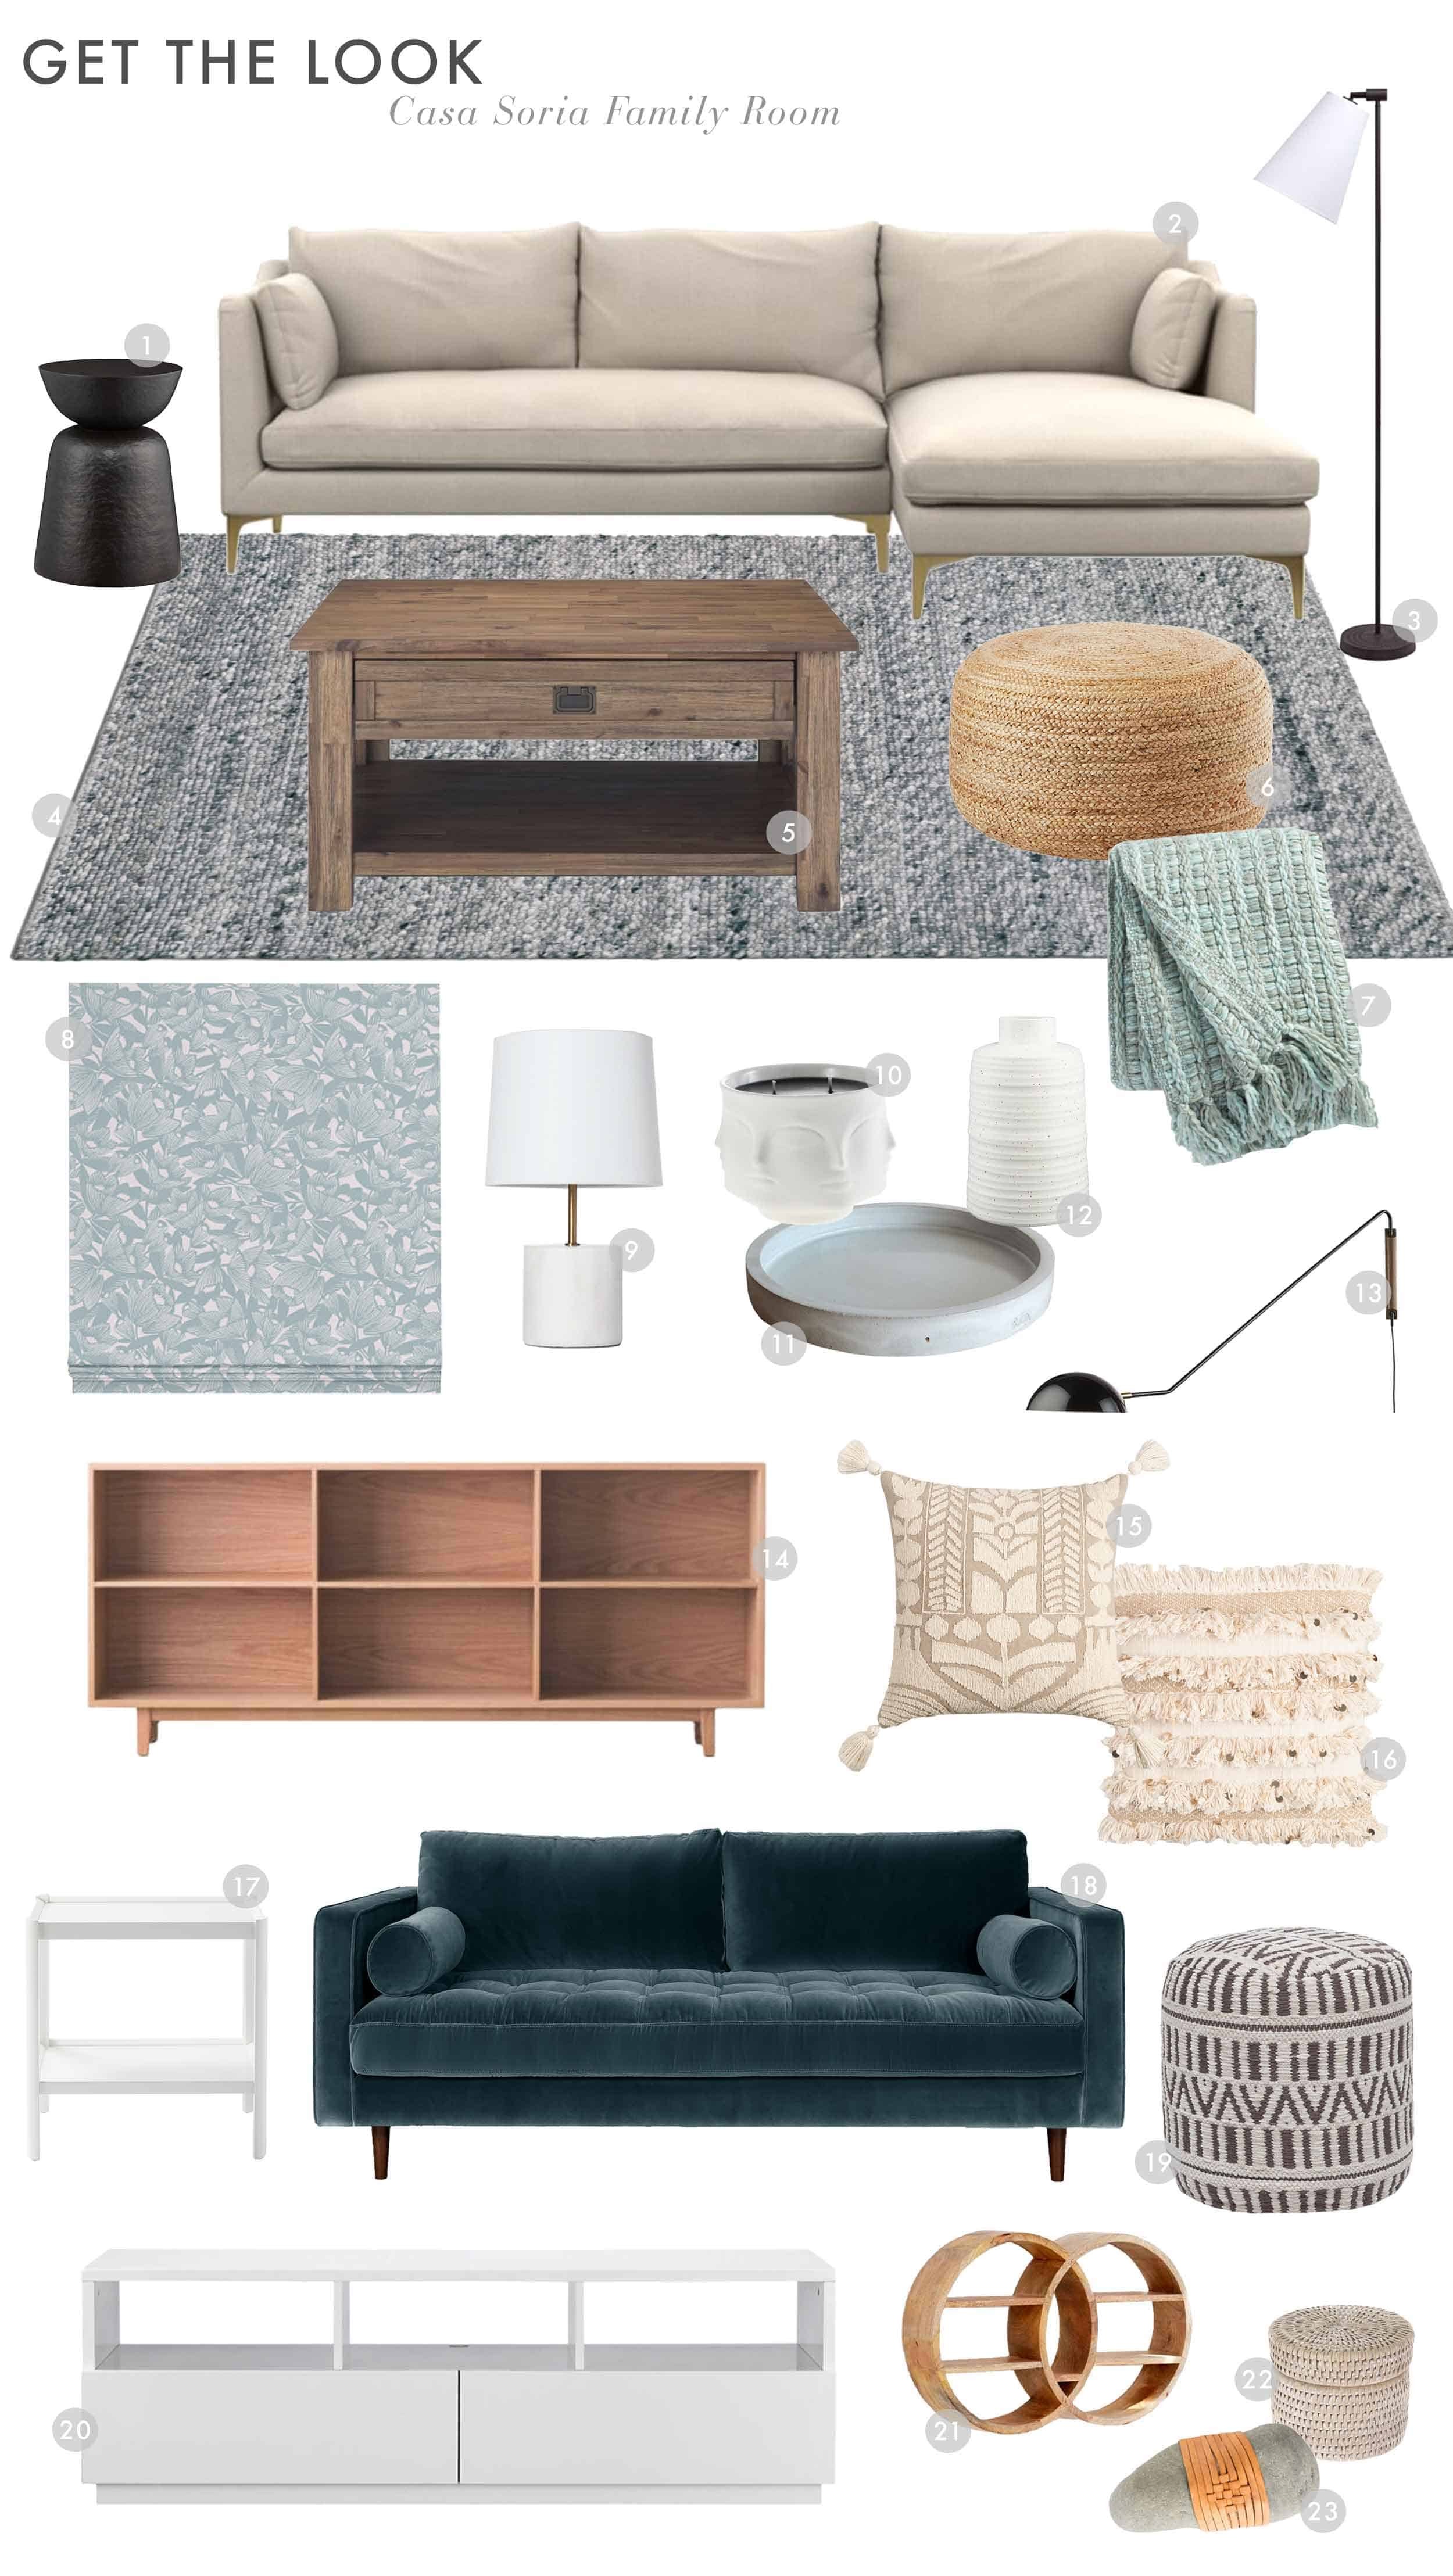 Emily Henderson Orlandos Parents House Family Room Reveal Get The Look